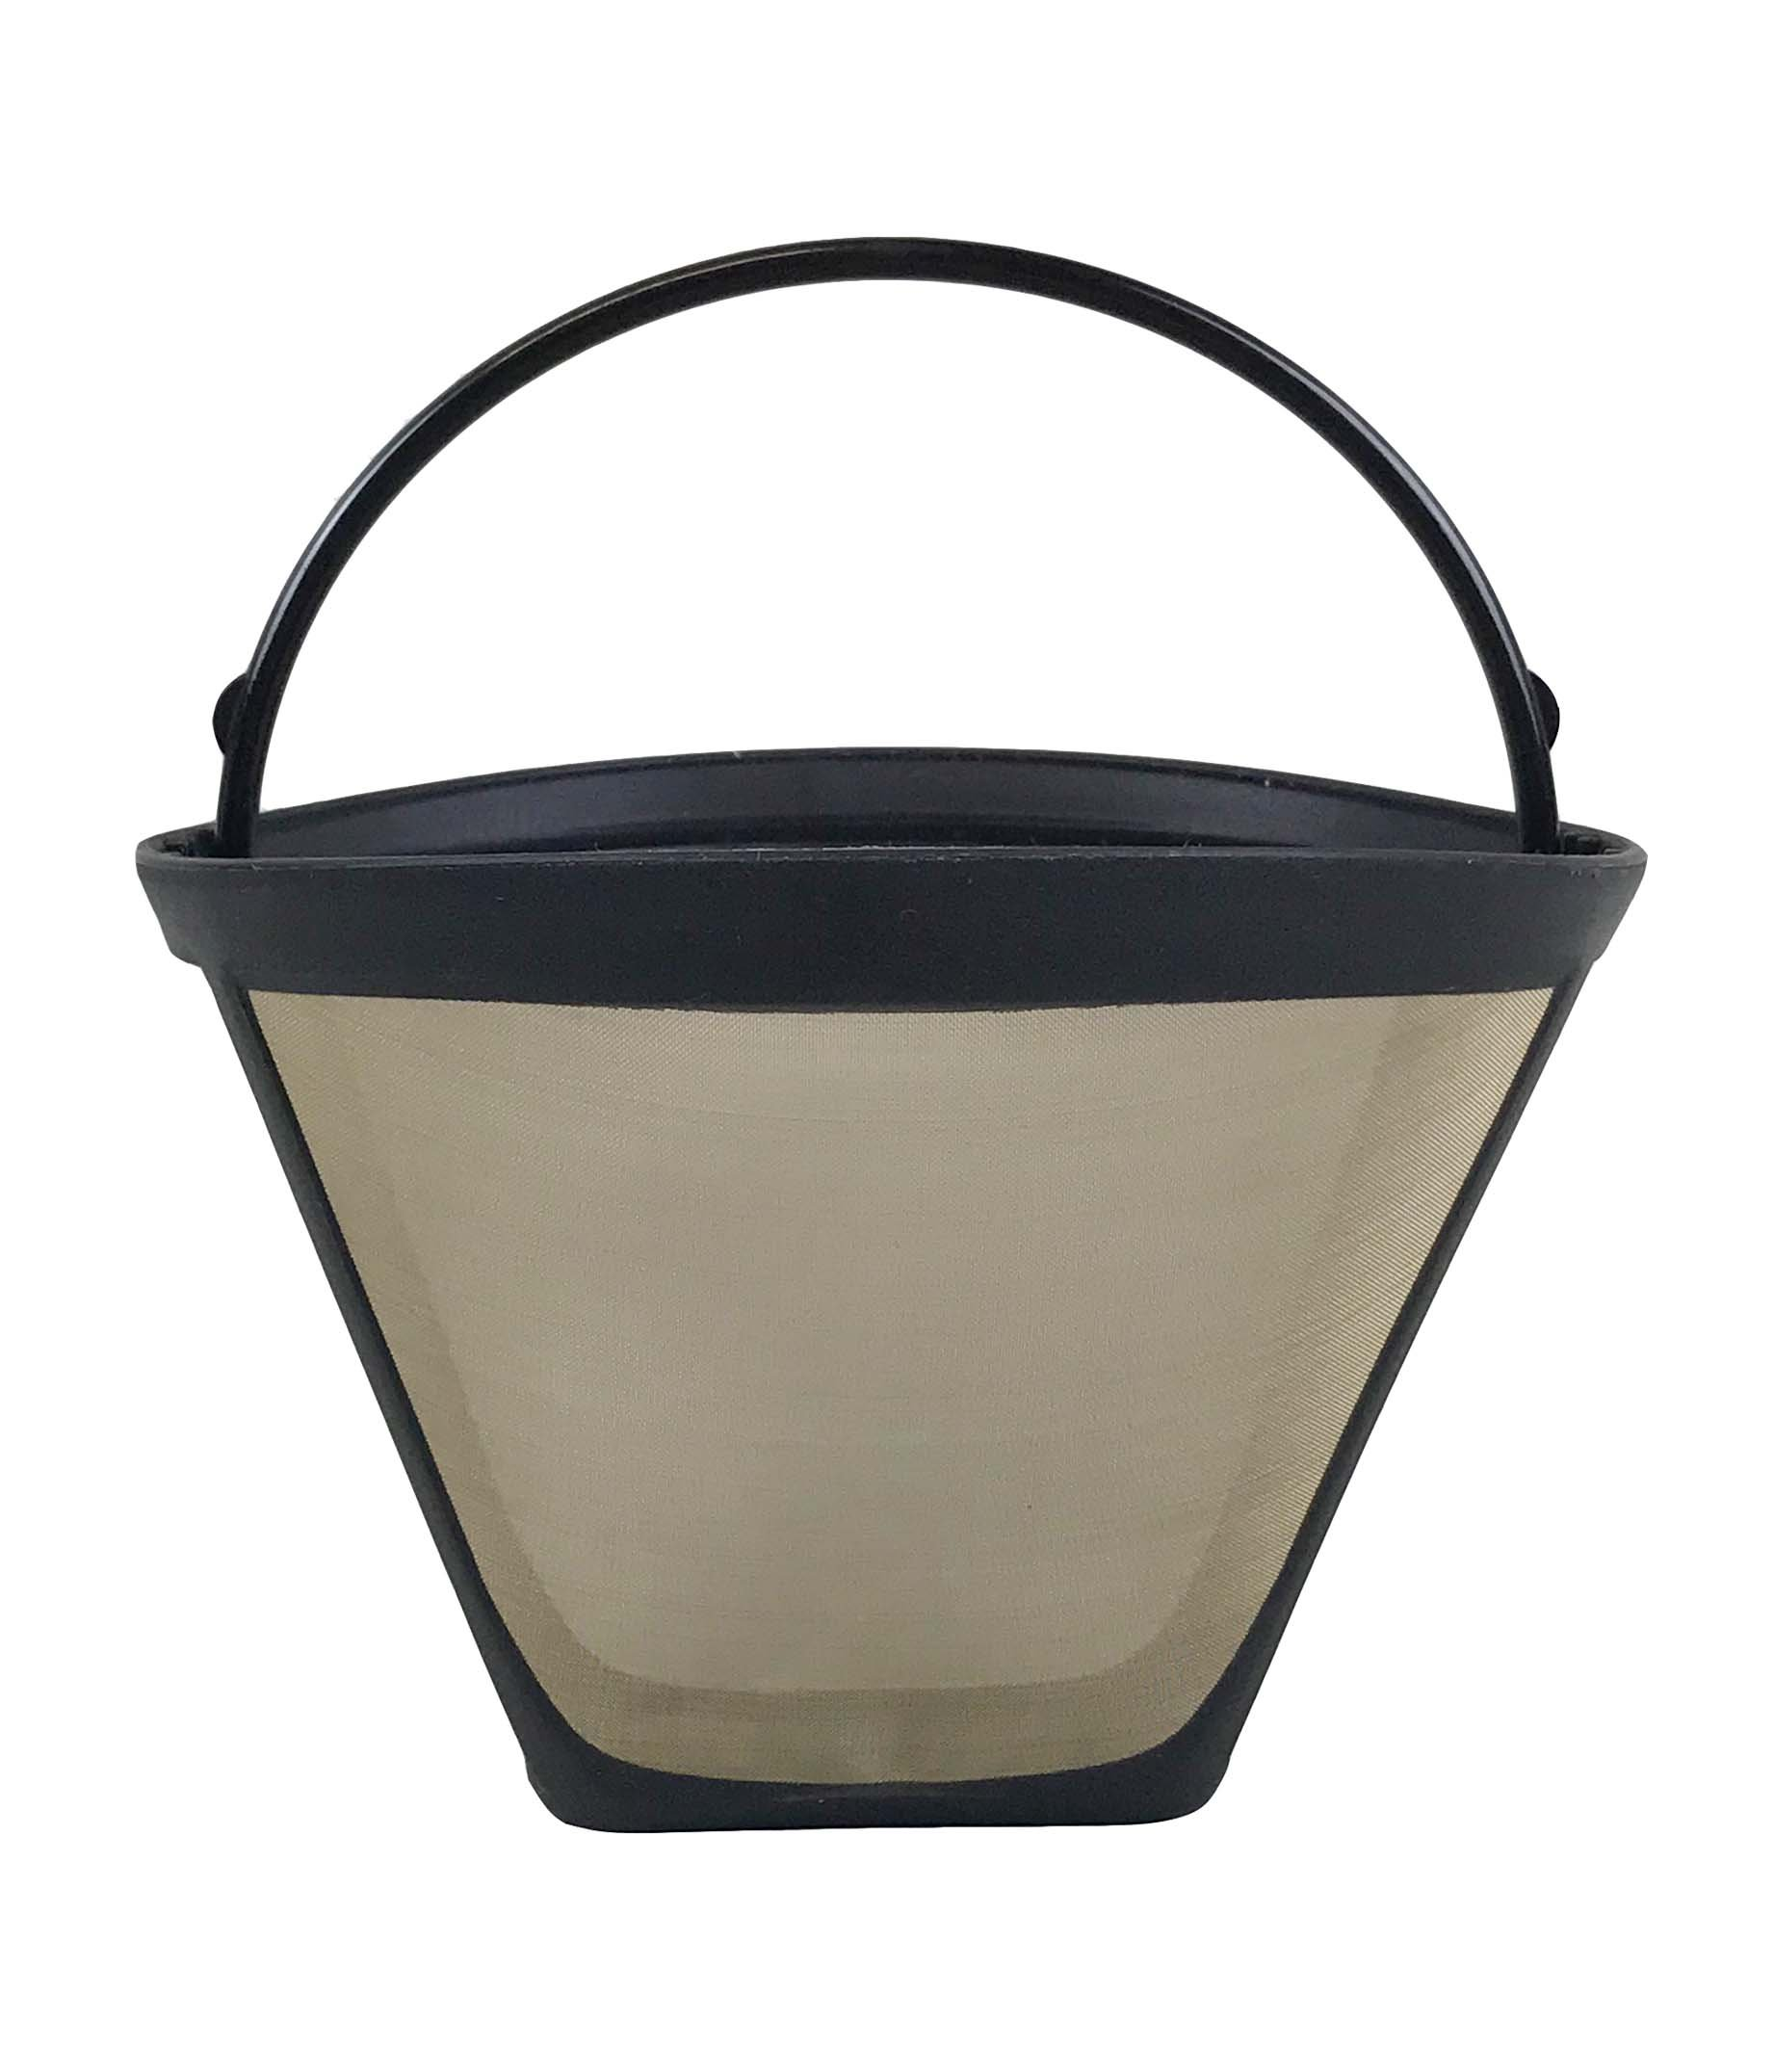 Think Crucial Replacement for Ninja Coffee Filter Fits Coffee Bar, Washable & Reusable